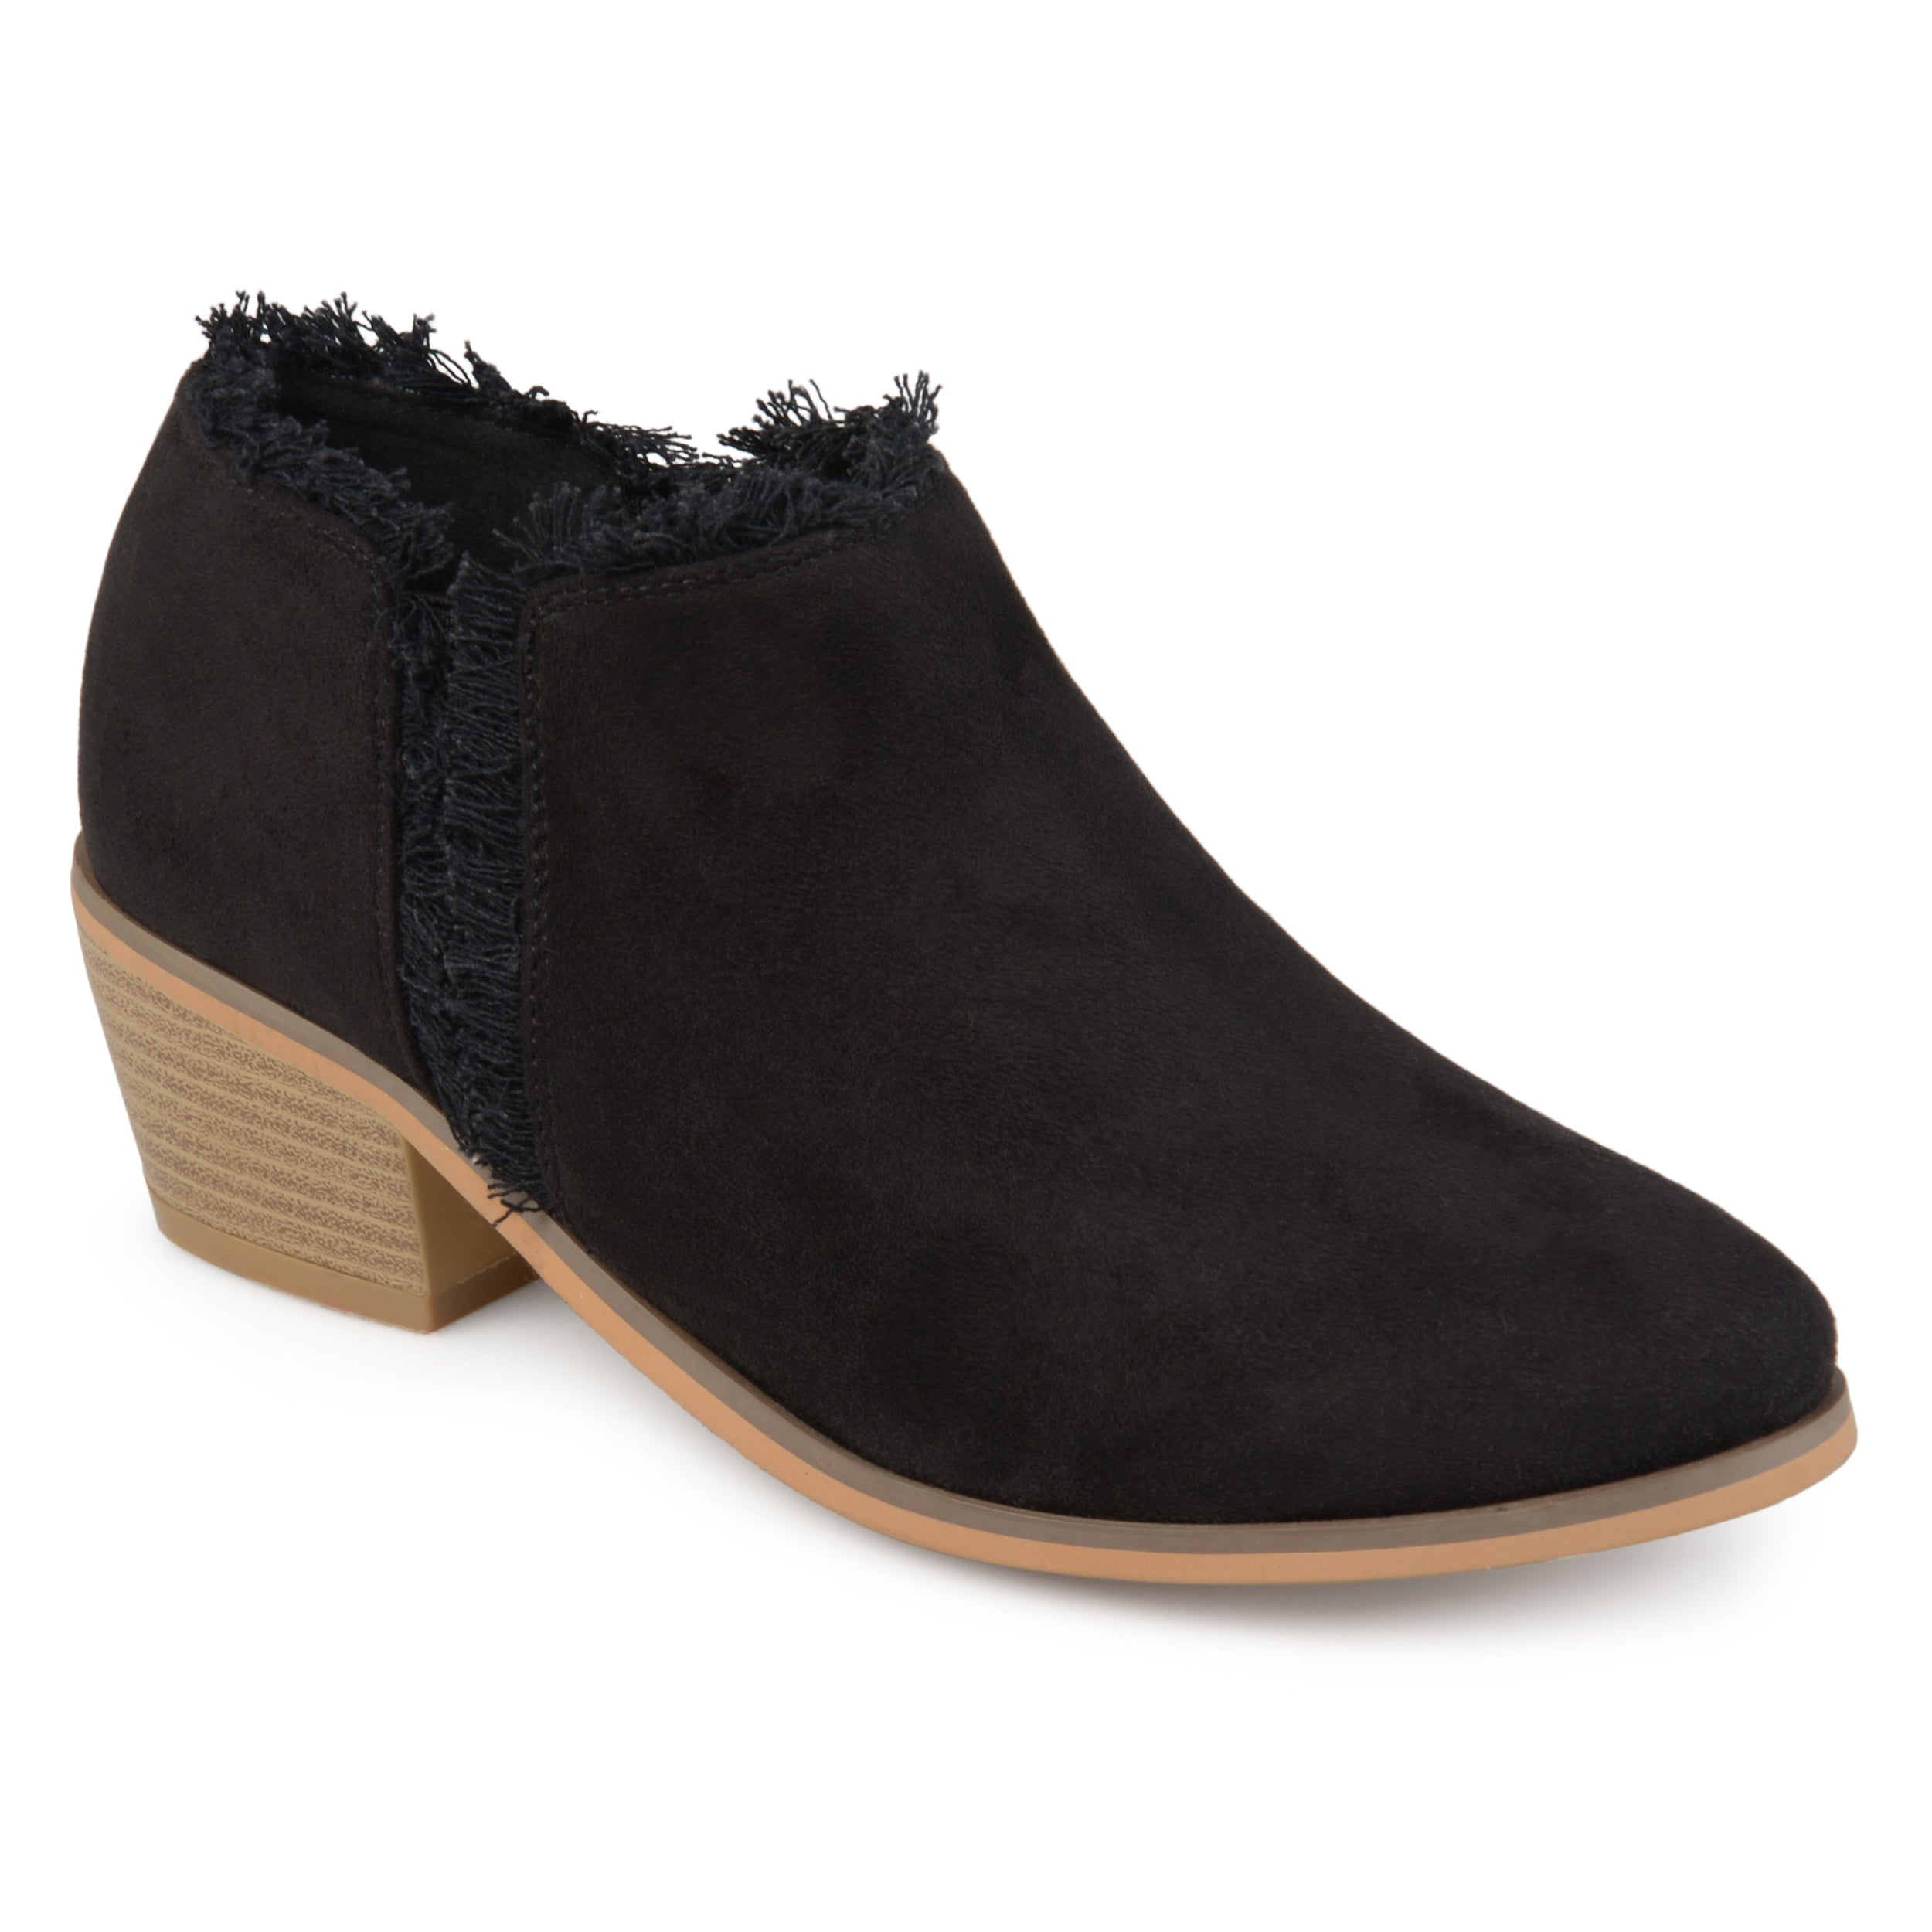 Journee Collection Moxie ... Women's Ankle Boots COSKcvw7